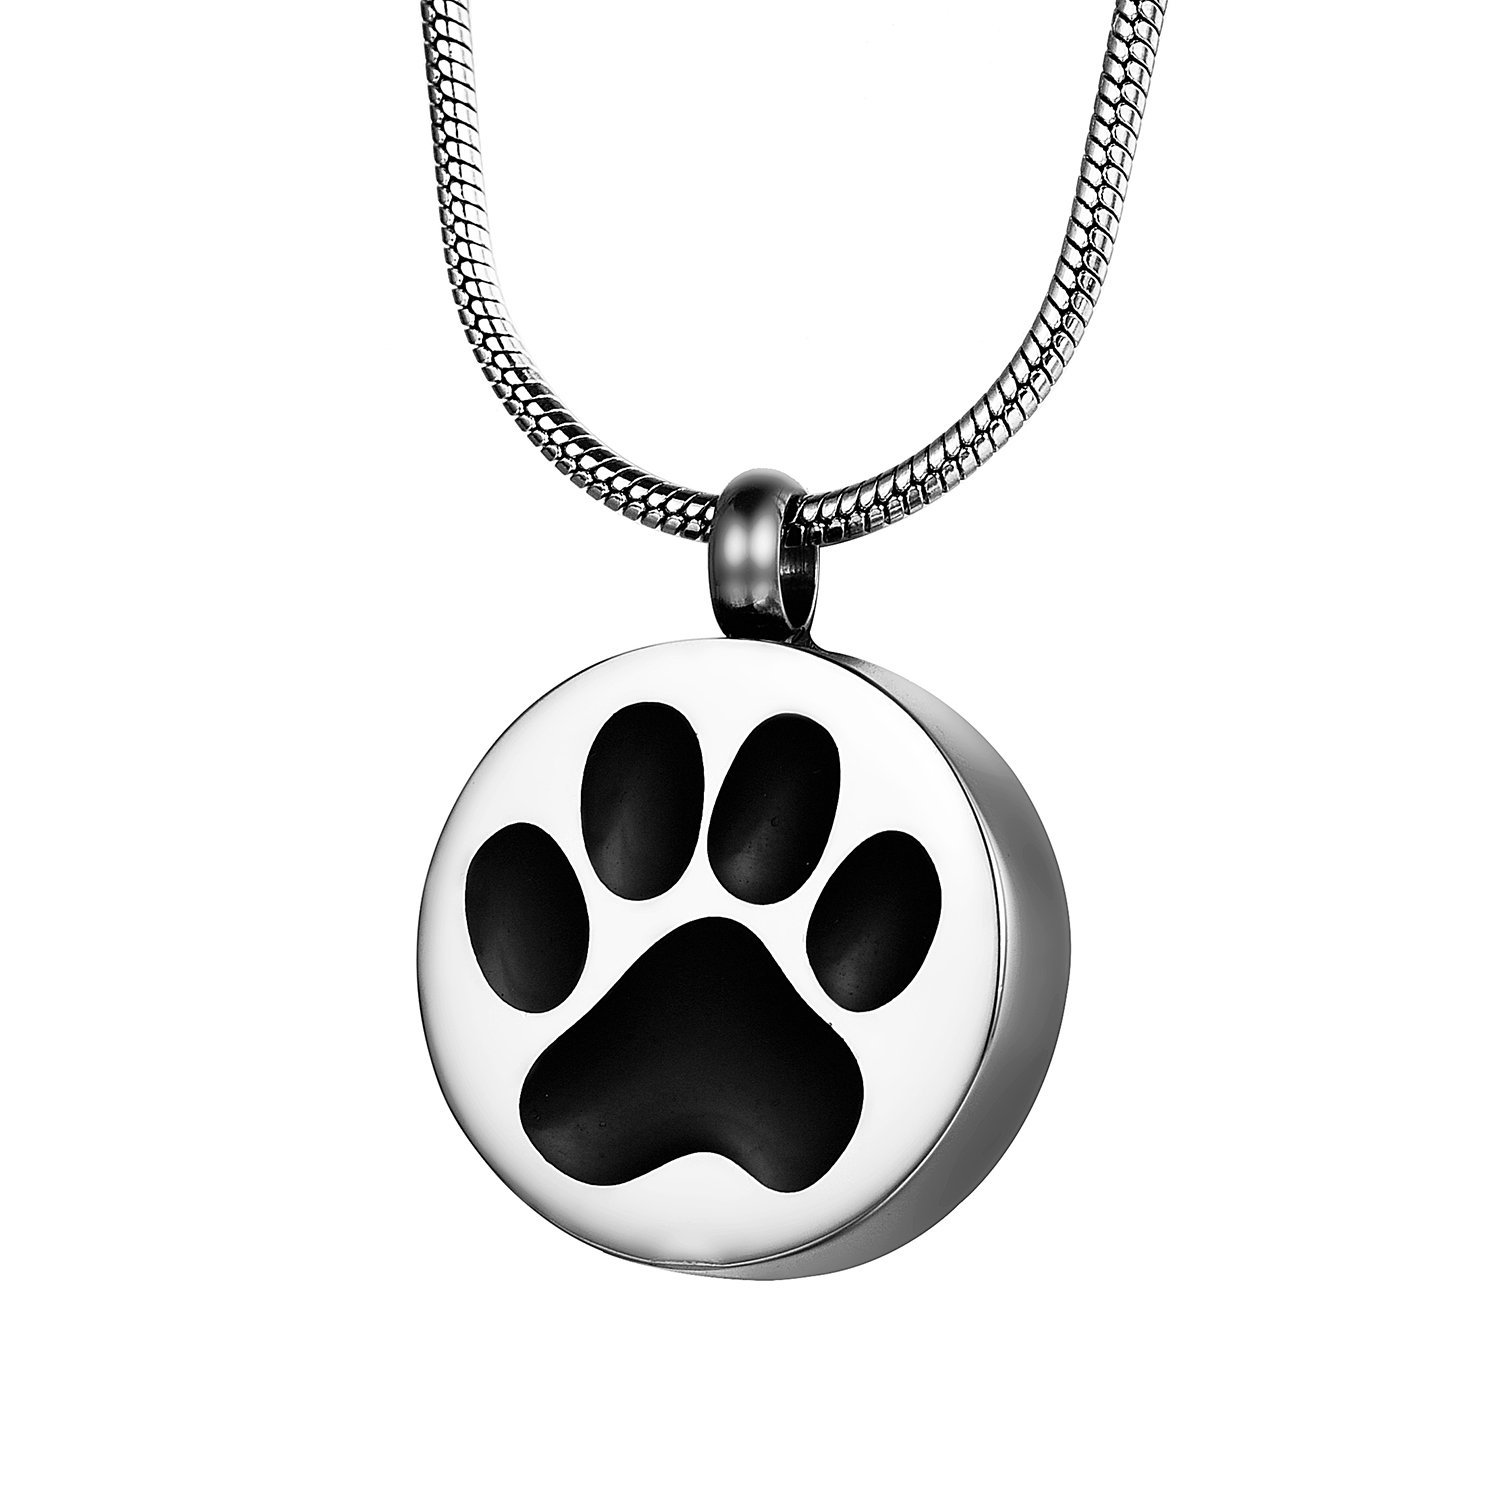 COCO Park Round Engraving Dog Cat Paw Pet Cremation Pendant Necklace Memorial Ashes Urn Jewelry Keepsake